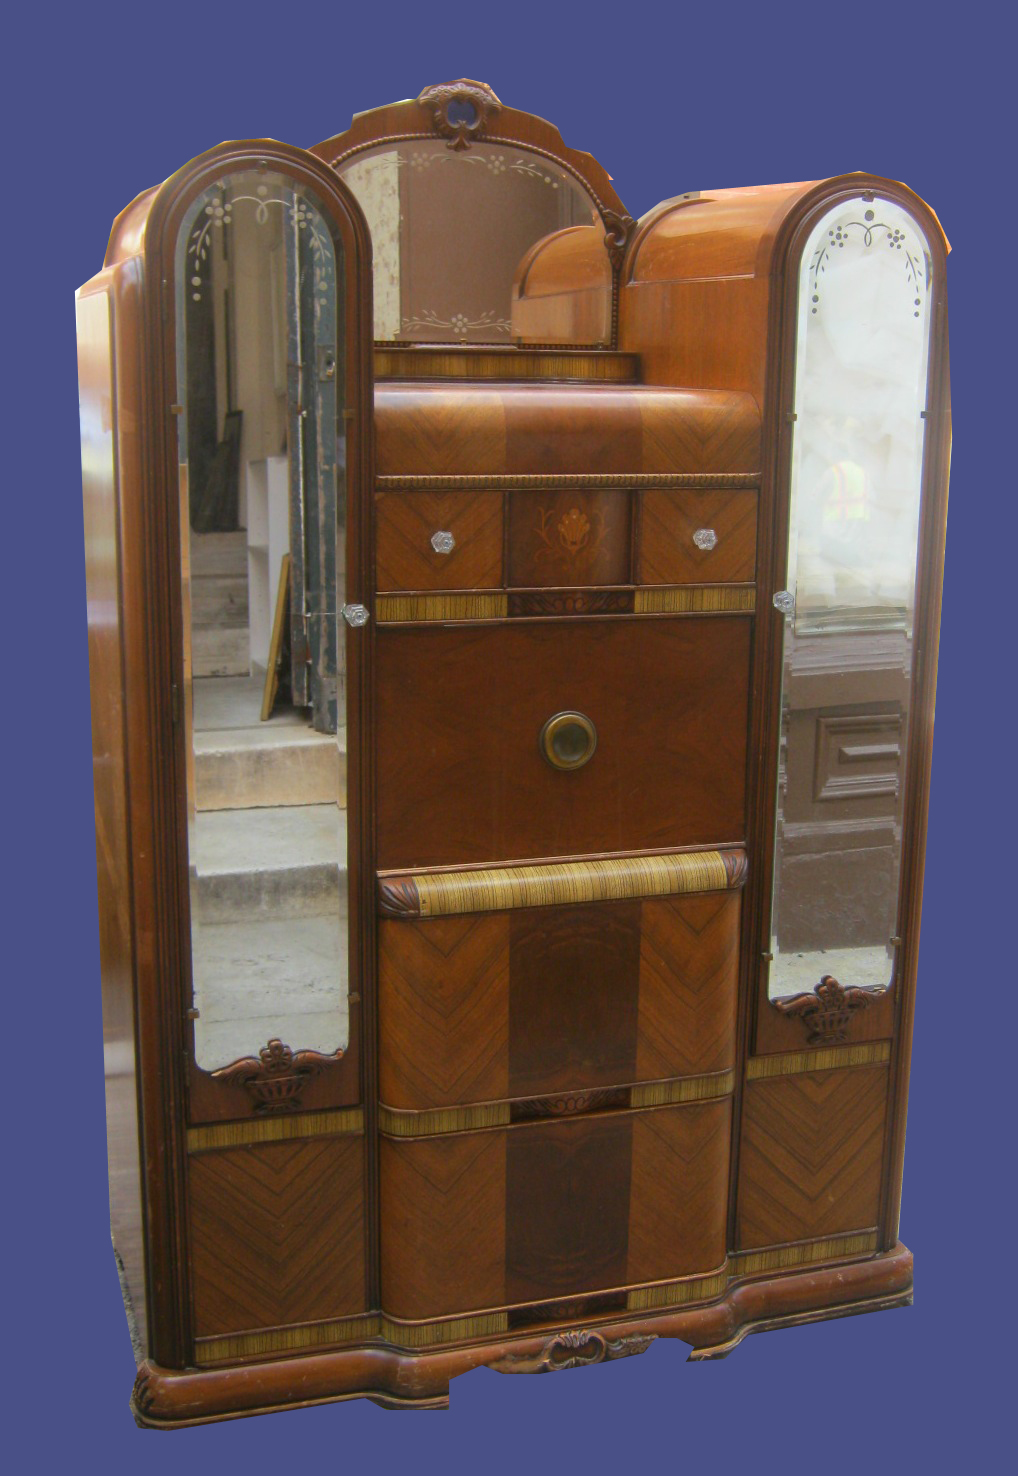 Uhuru furniture collectibles vintage waterfall armoire